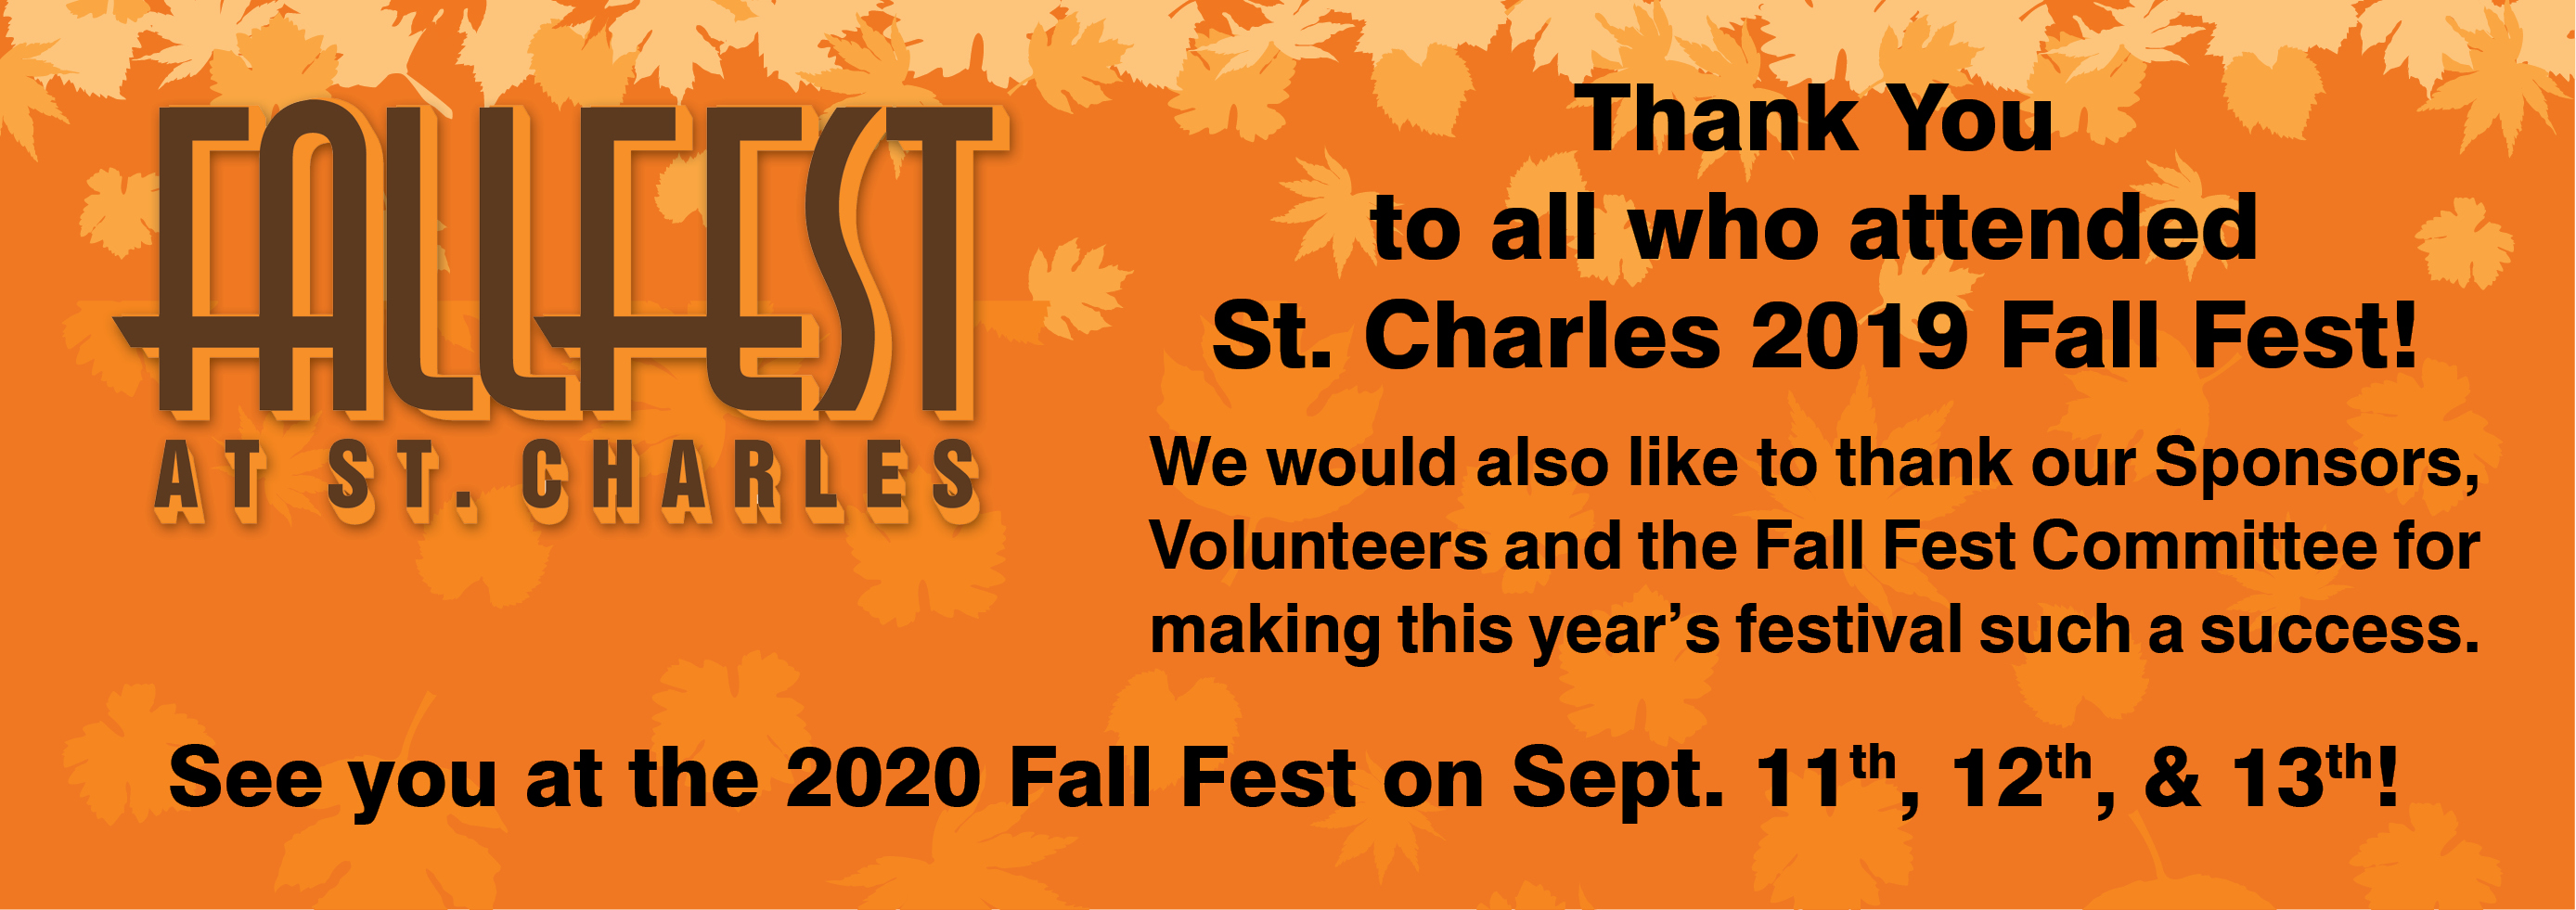 '2019 Fall Fest Thank You